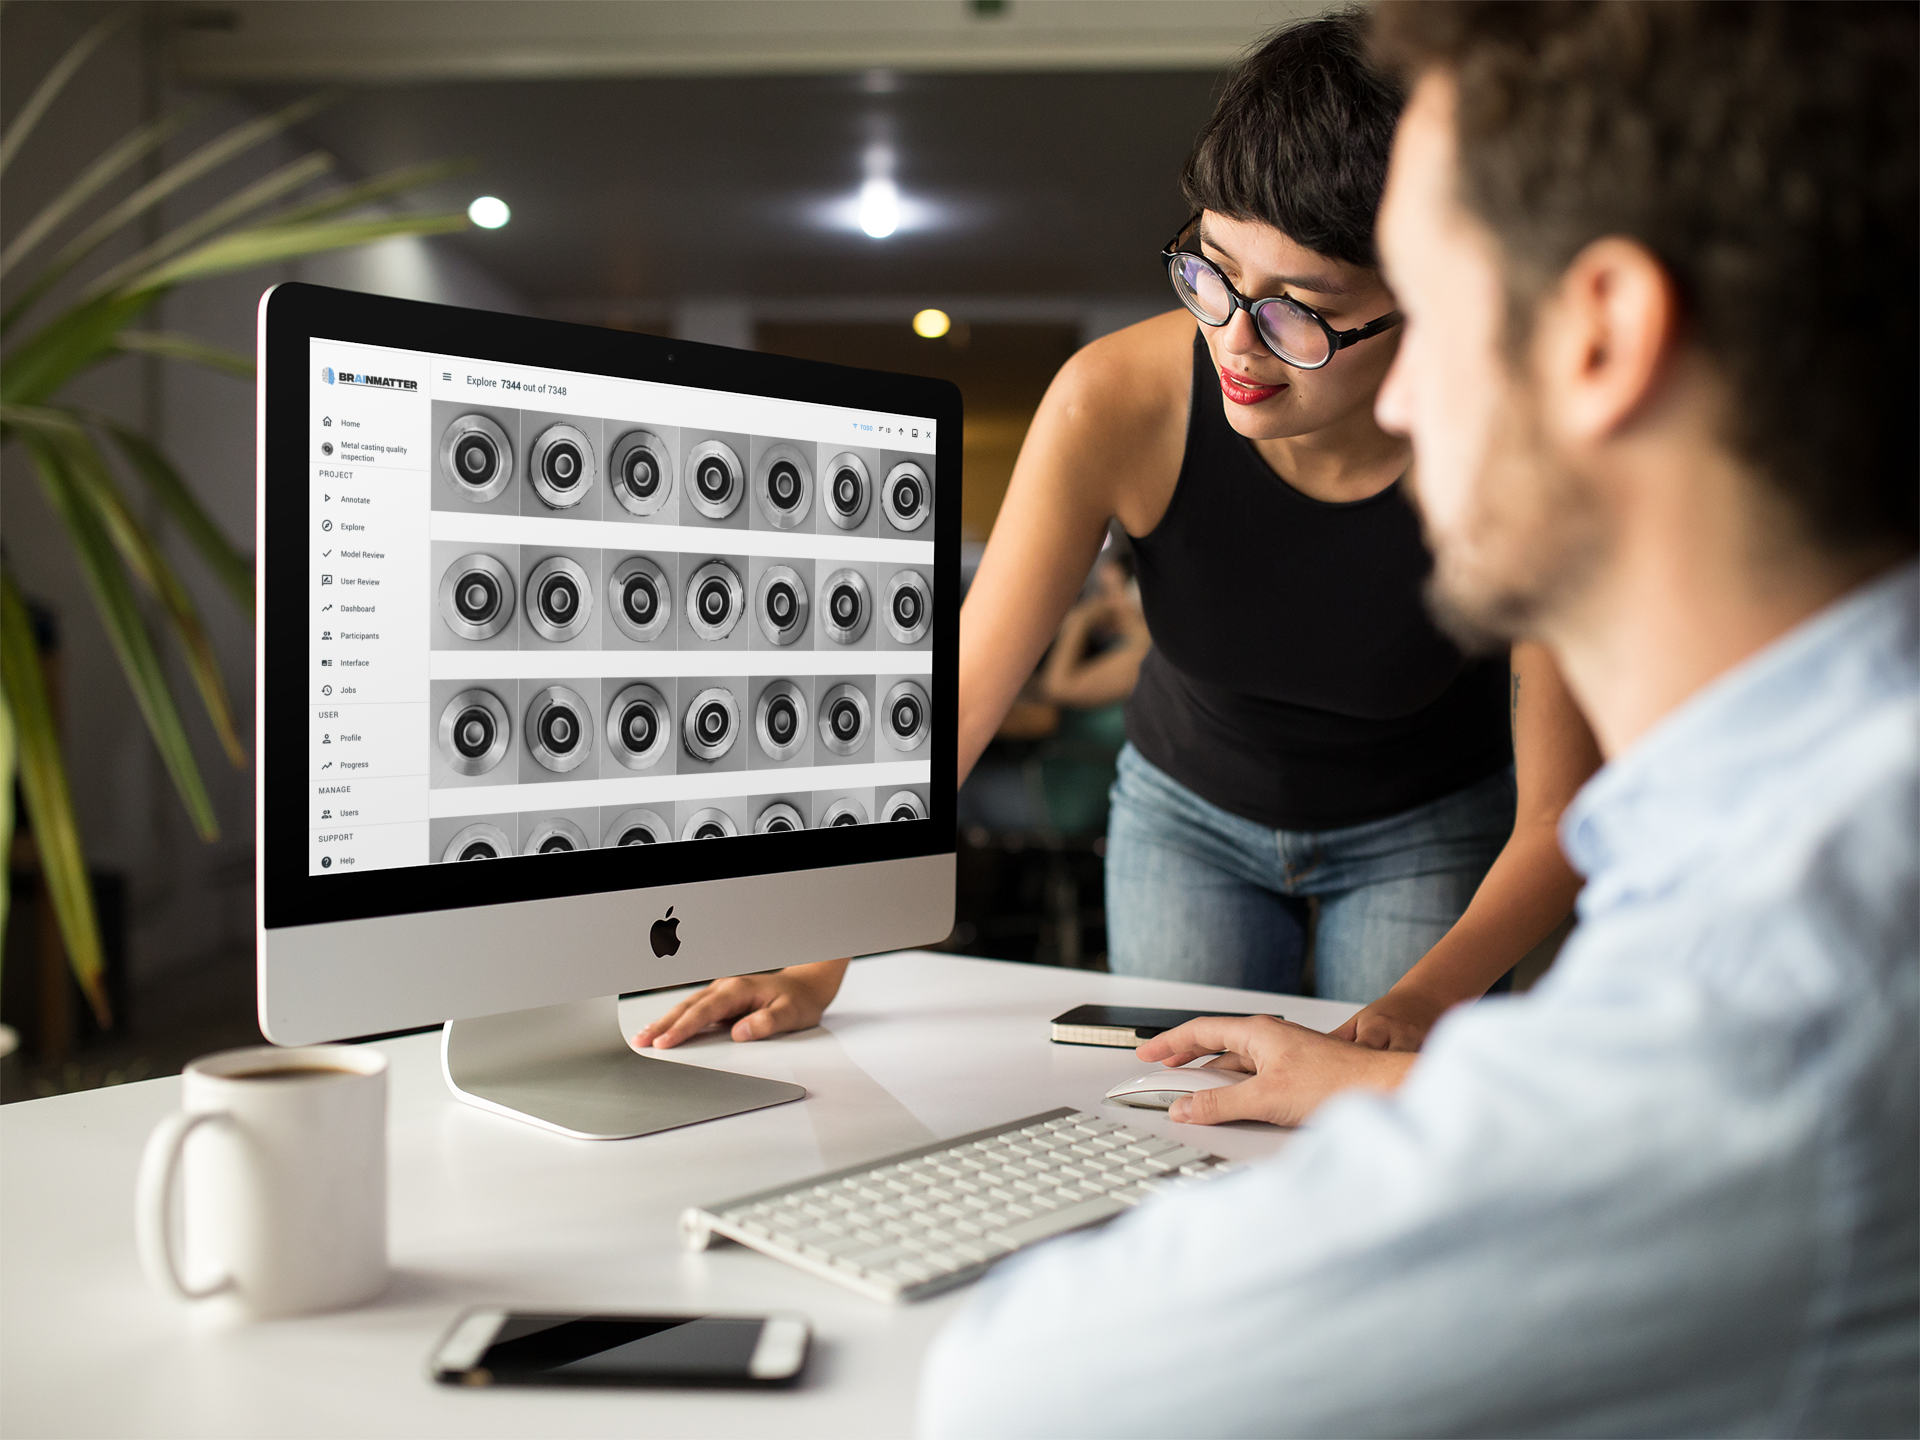 girl-showing-something-in-imac-mockup-to-coworker-a16266 (2)